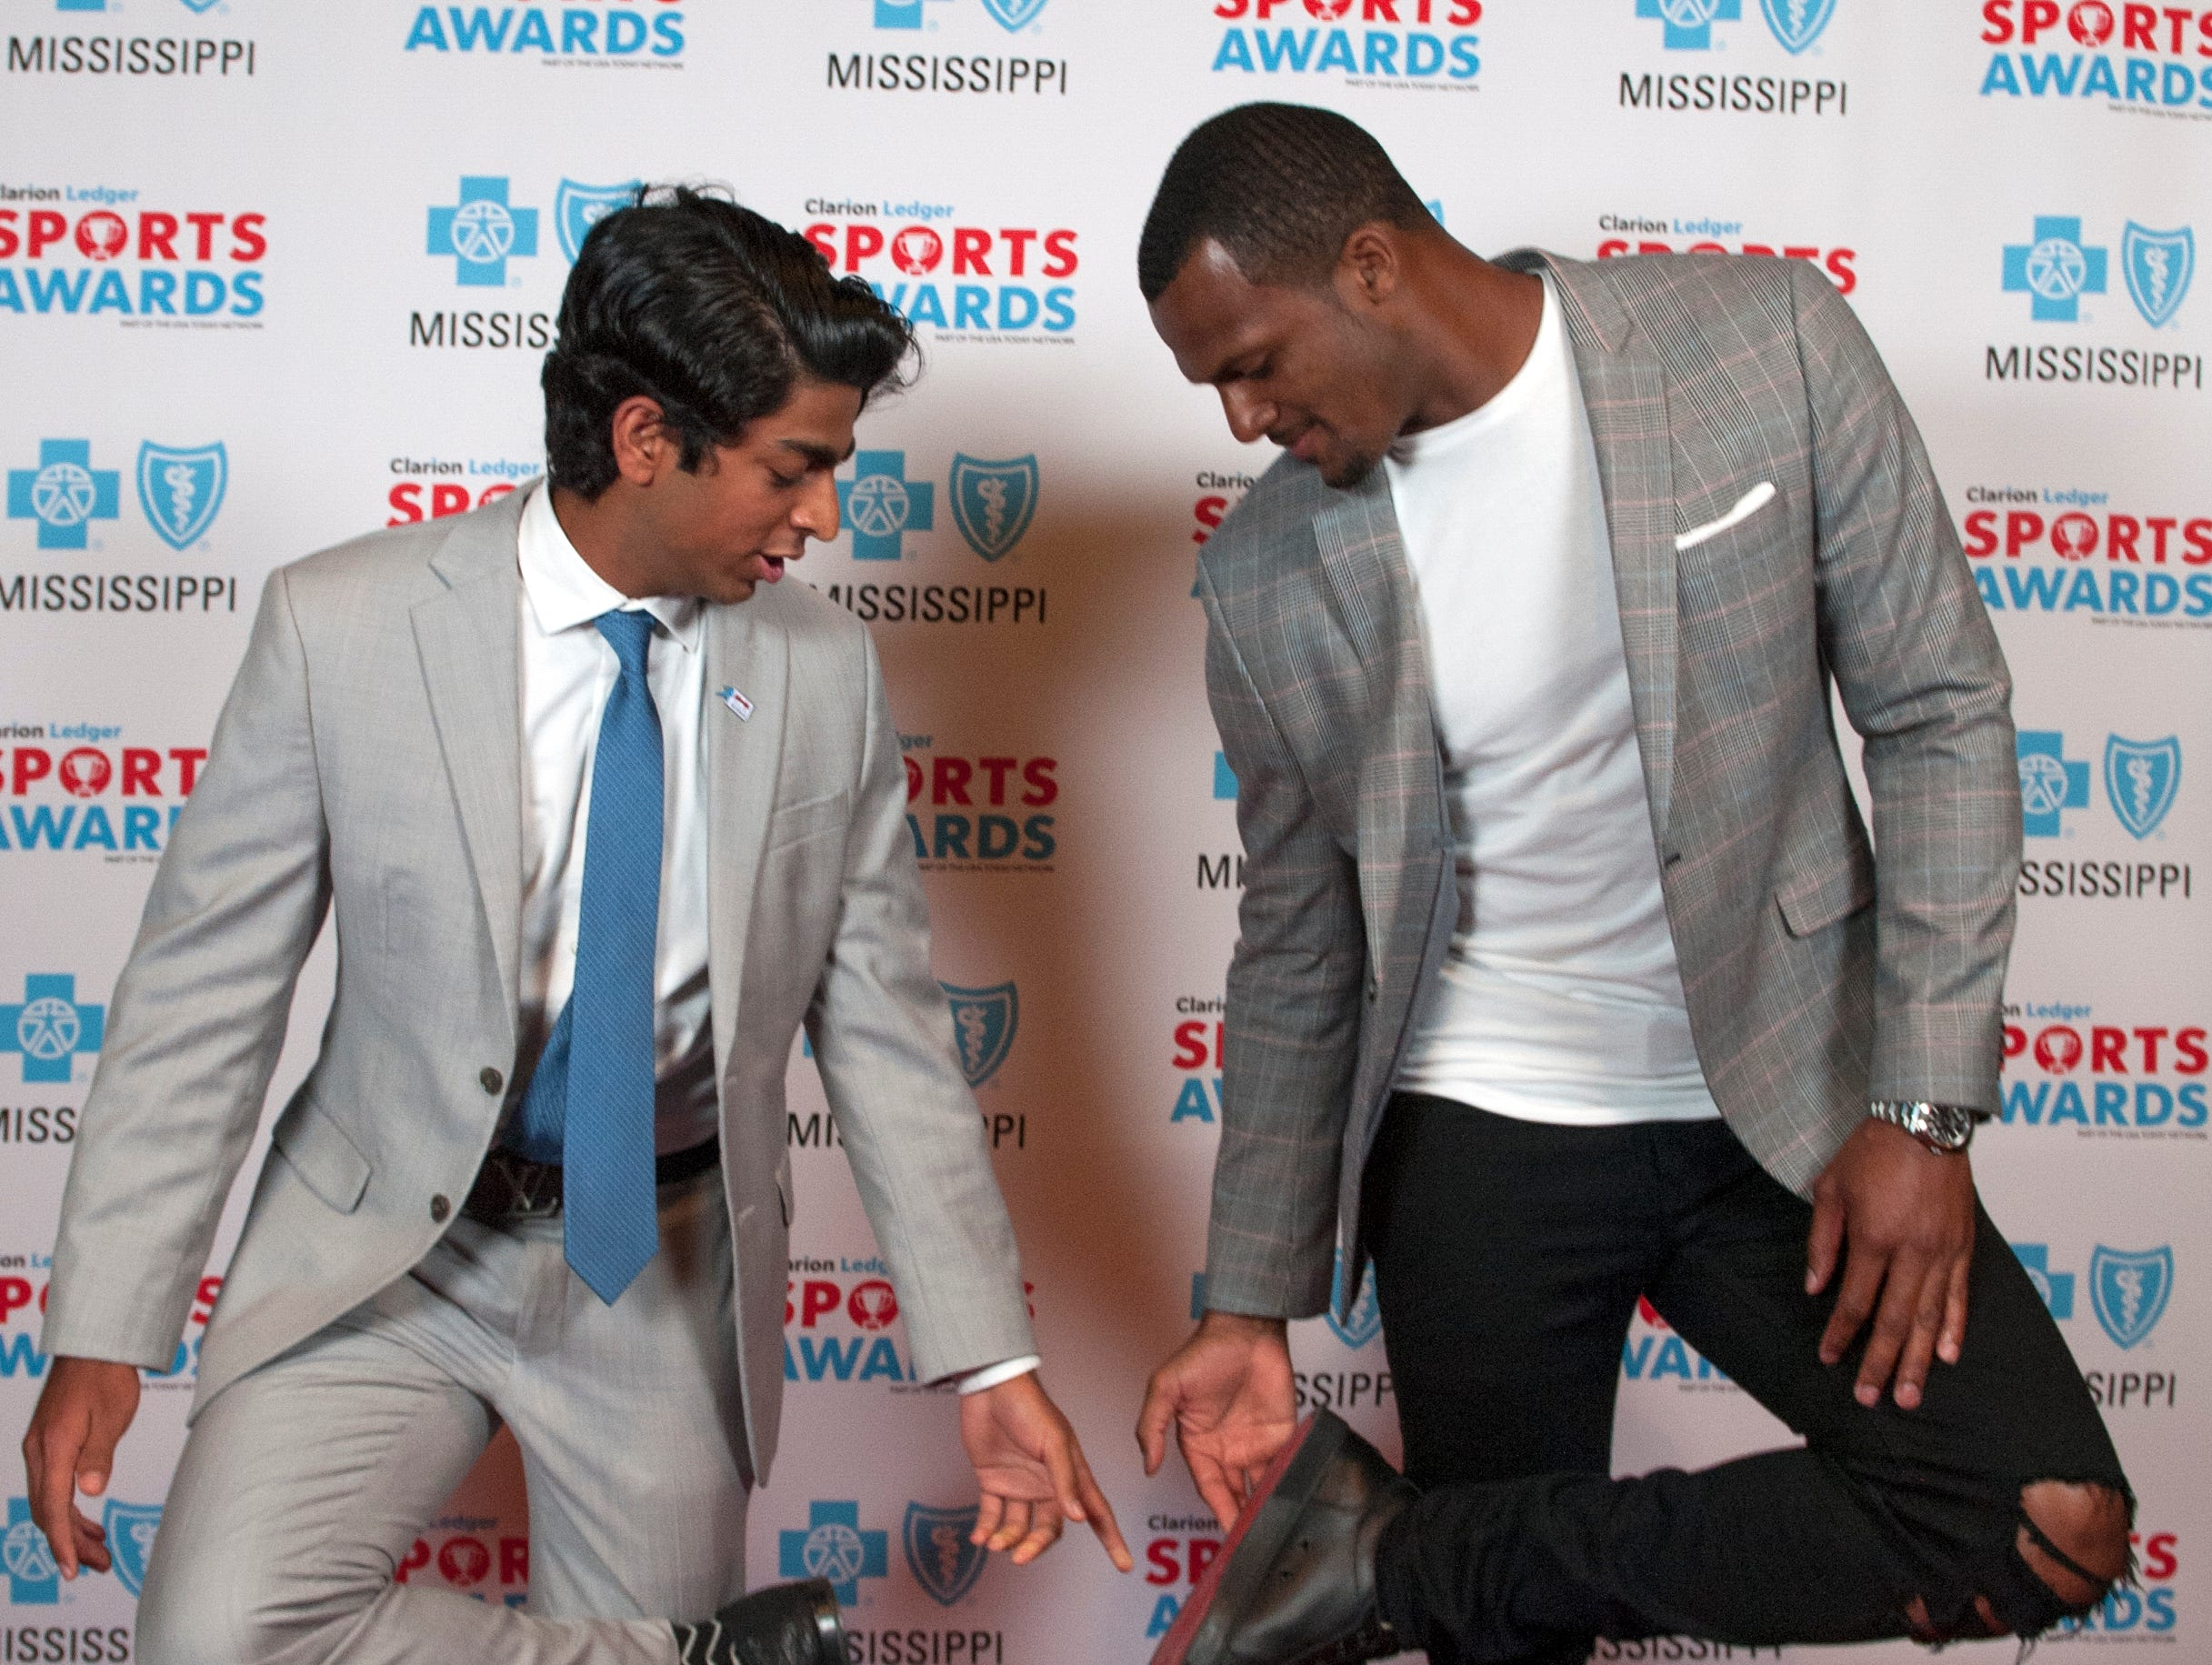 Houston Texans quarterback Deshaun Watson lifts his shoe to compare when Wendy's High School National Heisman Award Winner Sunjay Chawla asks about what he's wearing during their meeting at the Clarion Ledger High School Sports Awards Tuesday. Chawla is from Pillow Academy in Greenwood.